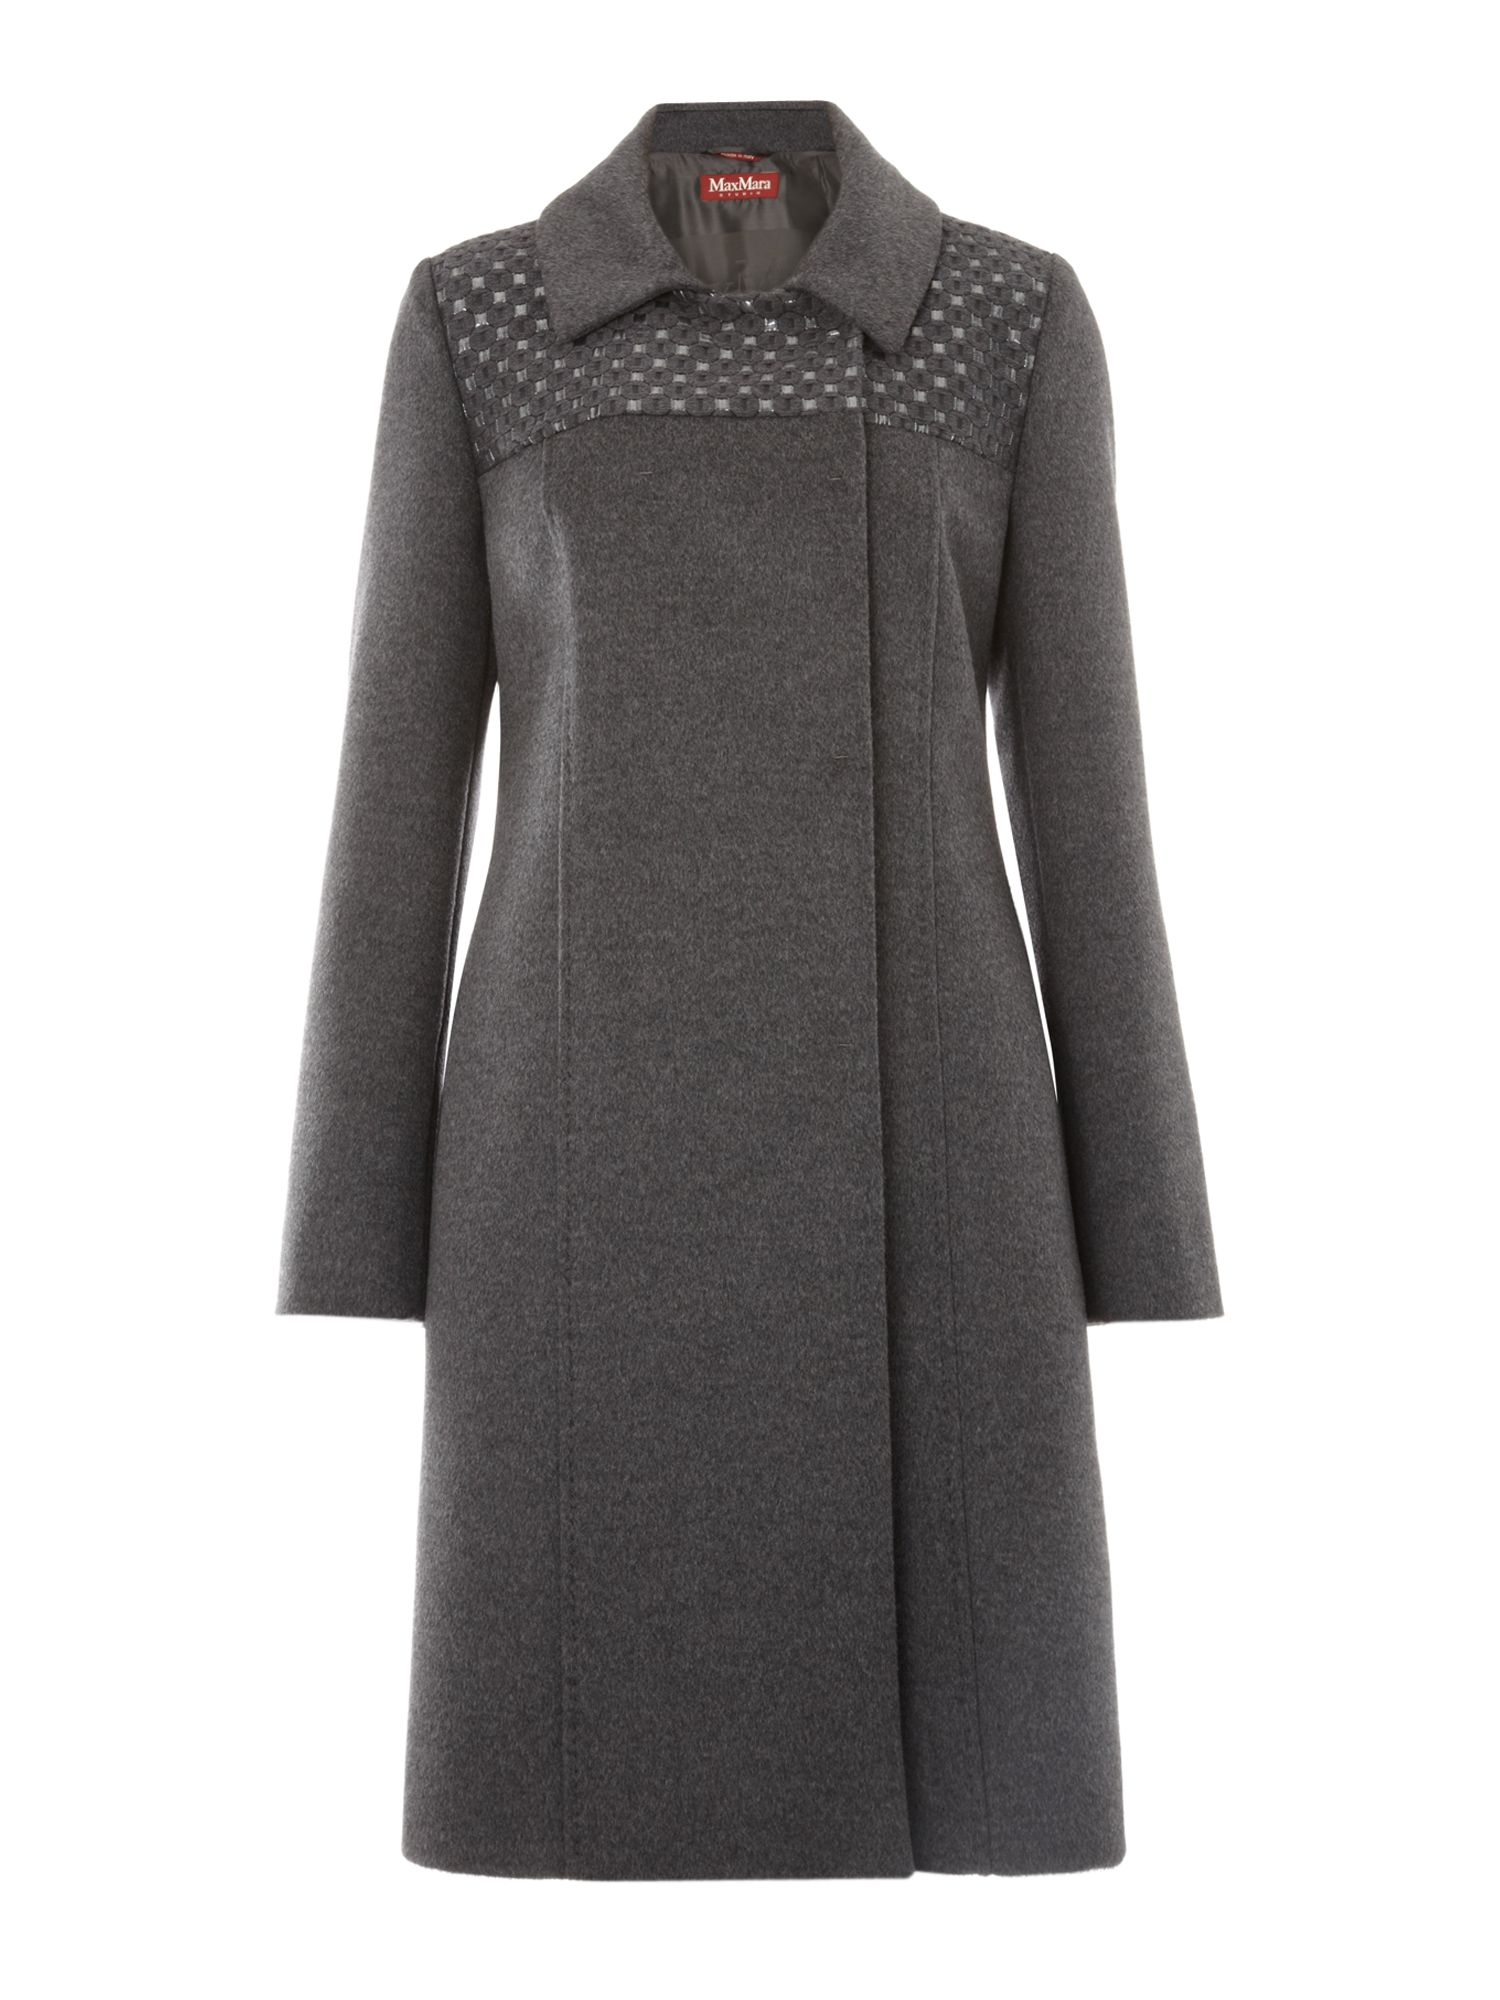 Miretta coat with print detail